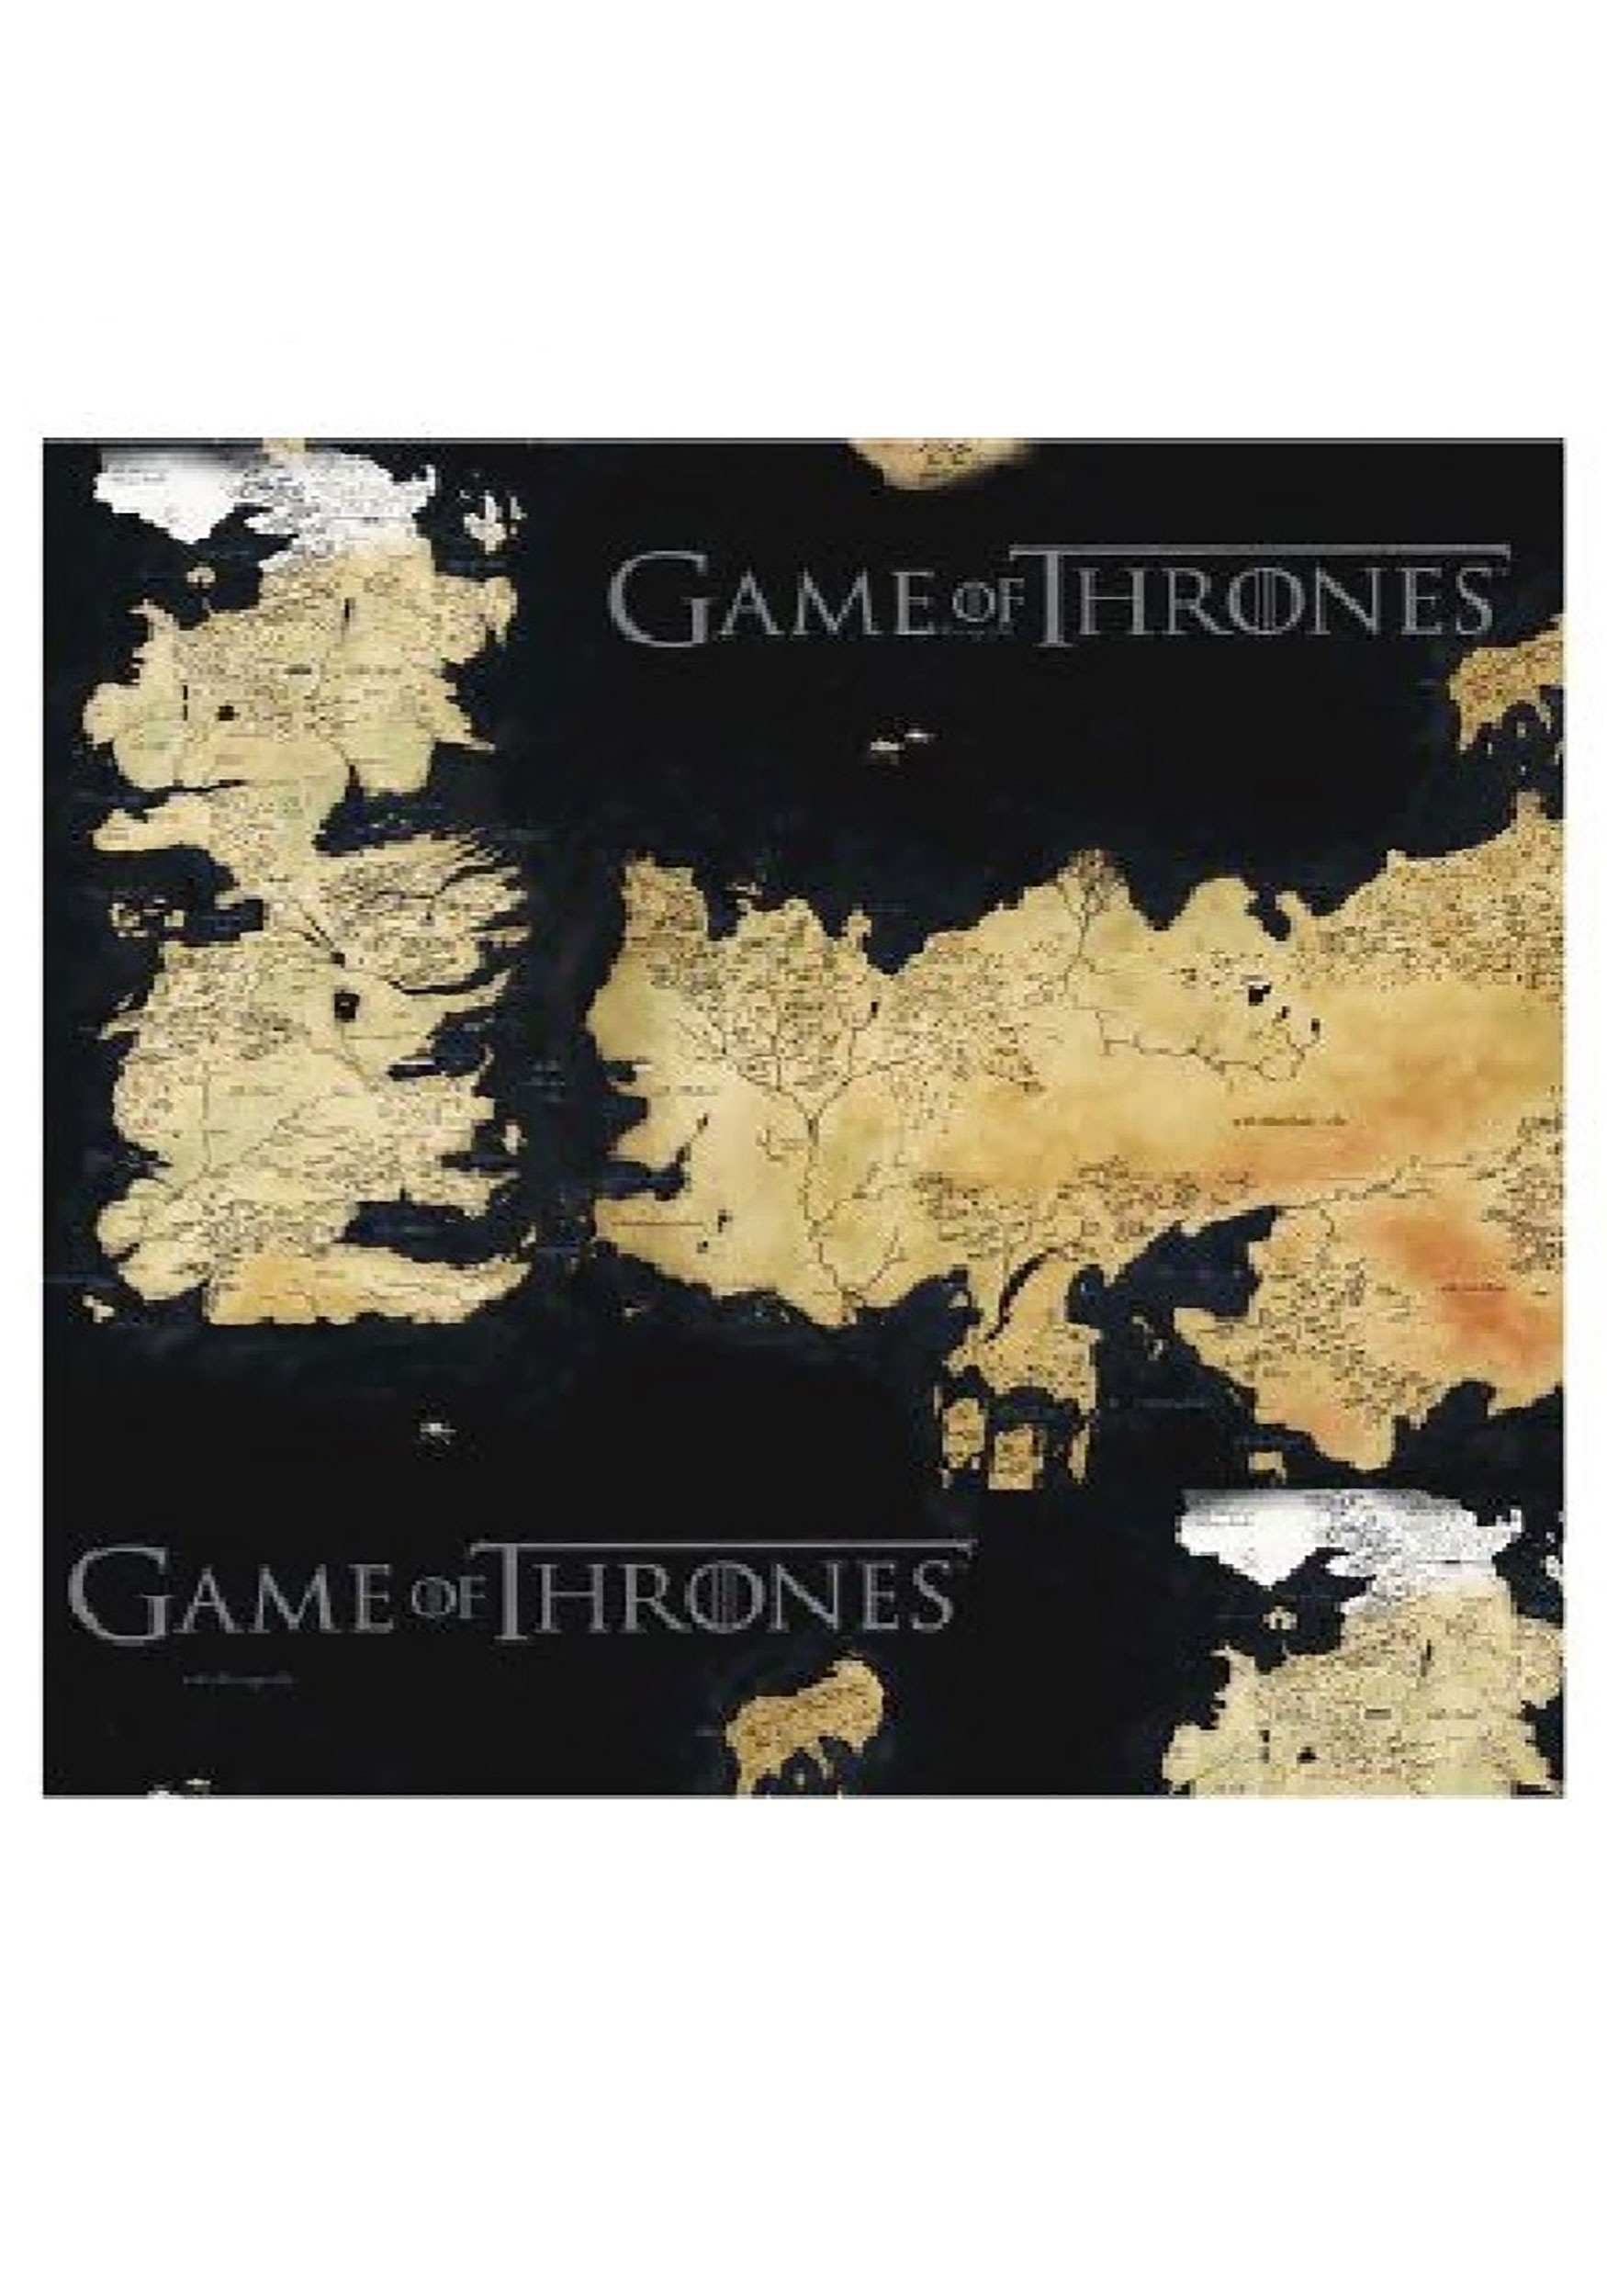 Game of Thrones Westeros and Essos Map Backpack Game Pf Thrones Map on walking dead map, winterfell map, a game of thrones, fire and blood, justified map, a clash of kings, narnia map, a storm of swords, gendry map, themes in a song of ice and fire, got map, jericho map, the prince of winterfell, downton abbey map, lord snow, the kingsroad, works based on a song of ice and fire, dallas map, a game of thrones: genesis, clash of kings map, sons of anarchy, camelot map, qarth map, world map, bloodline map, a storm of swords map, tales of dunk and egg, game of thrones - season 2, a golden crown, star trek map, spooksville map, guild wars 2 map, game of thrones - season 1, a game of thrones collectible card game, jersey shore map, the pointy end, valyria map, winter is coming,